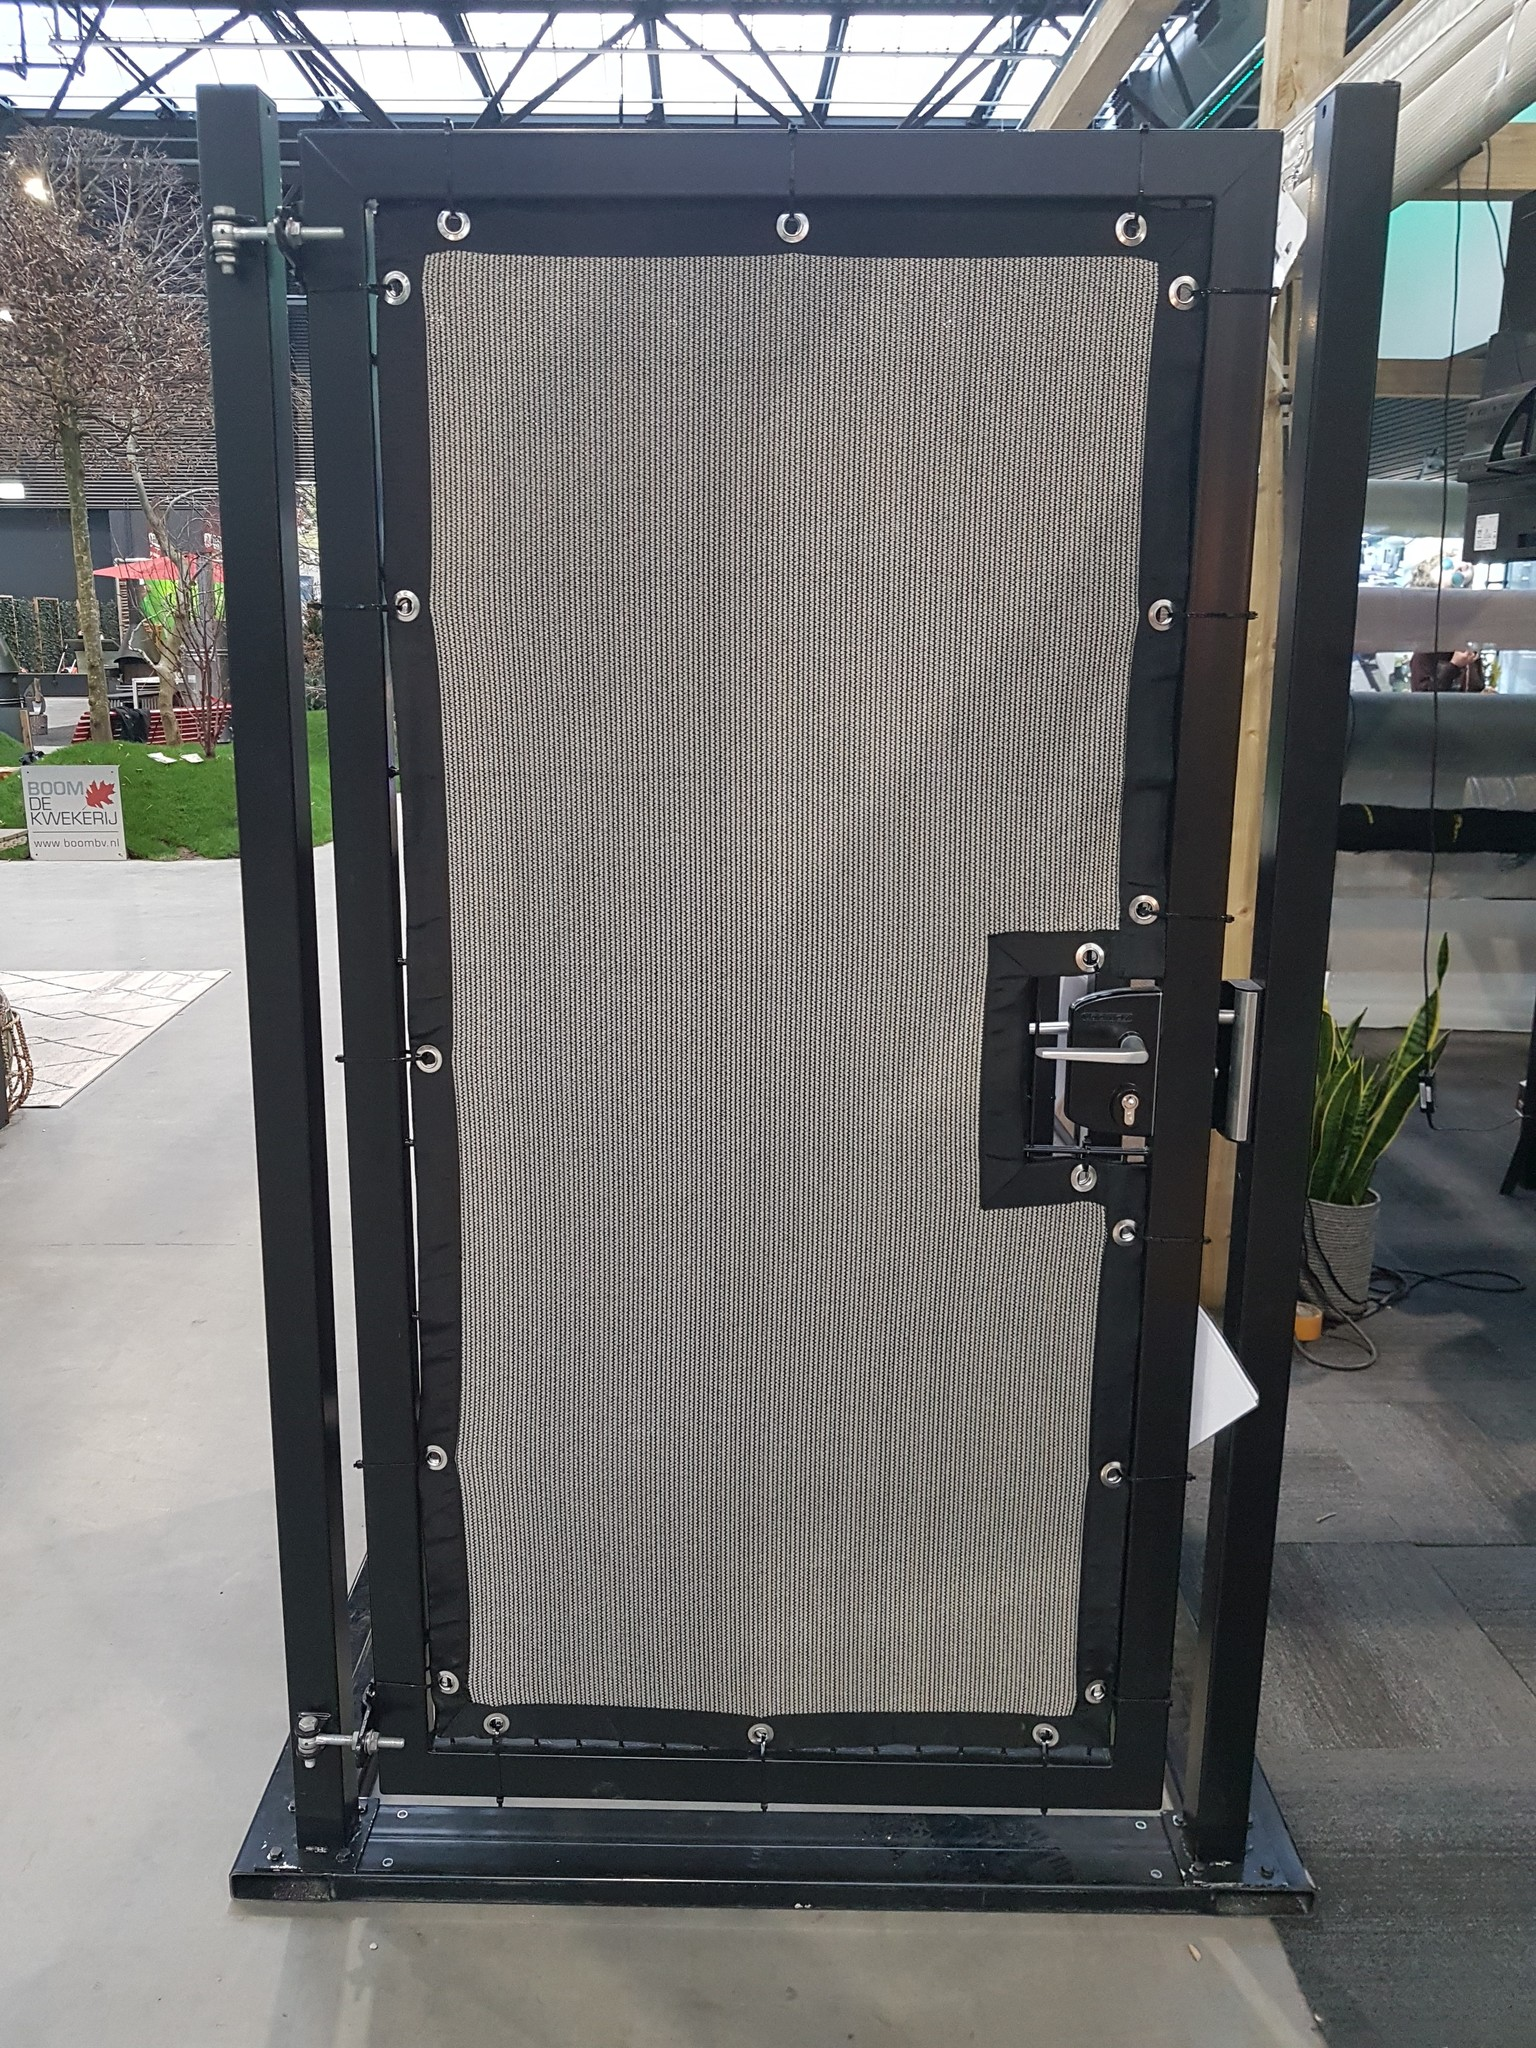 Gipea Easy To Fix Optimal Visibility Protection For Gate & Fence 100 Kabelbinder / bundelband staal RVS 266 x 4,6 mm.